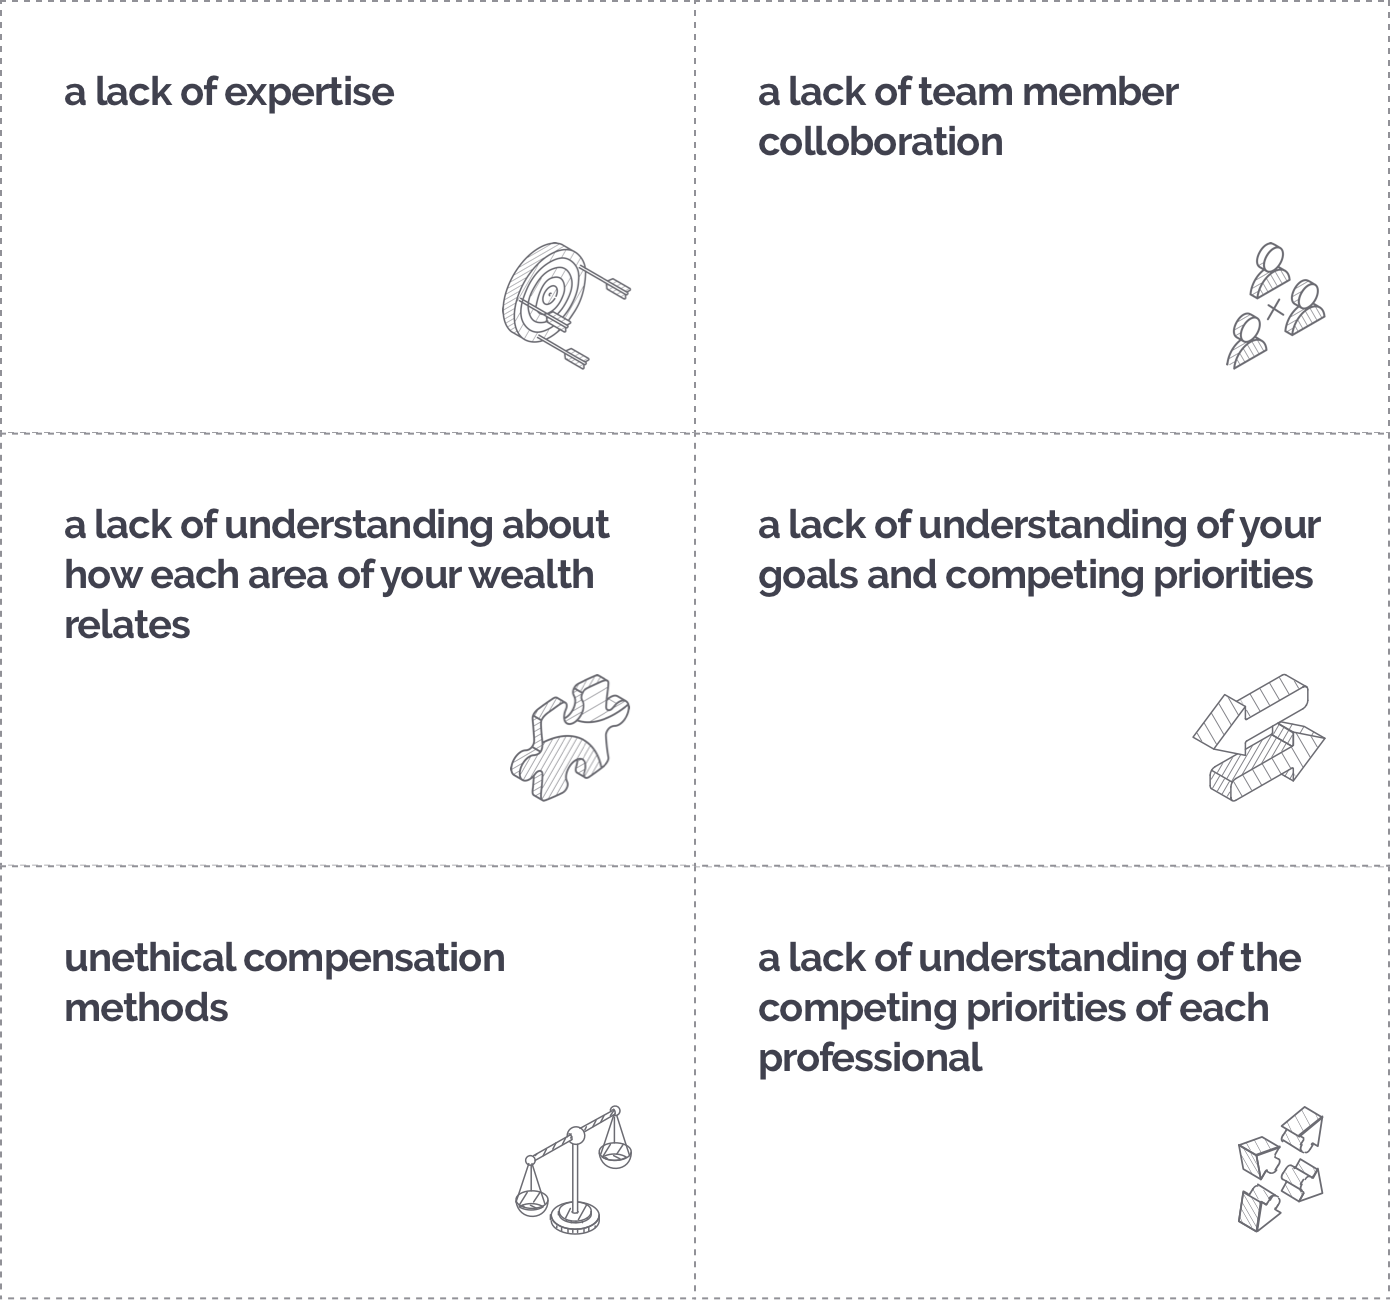 a lack of expertise, a lack of team member colloboration, a lack of understanding about how each area of your wealth relates, a lack of understanding of your goals and competing priorities, unethical compensation methods, a lack of understanding of the competing priorities of each professional